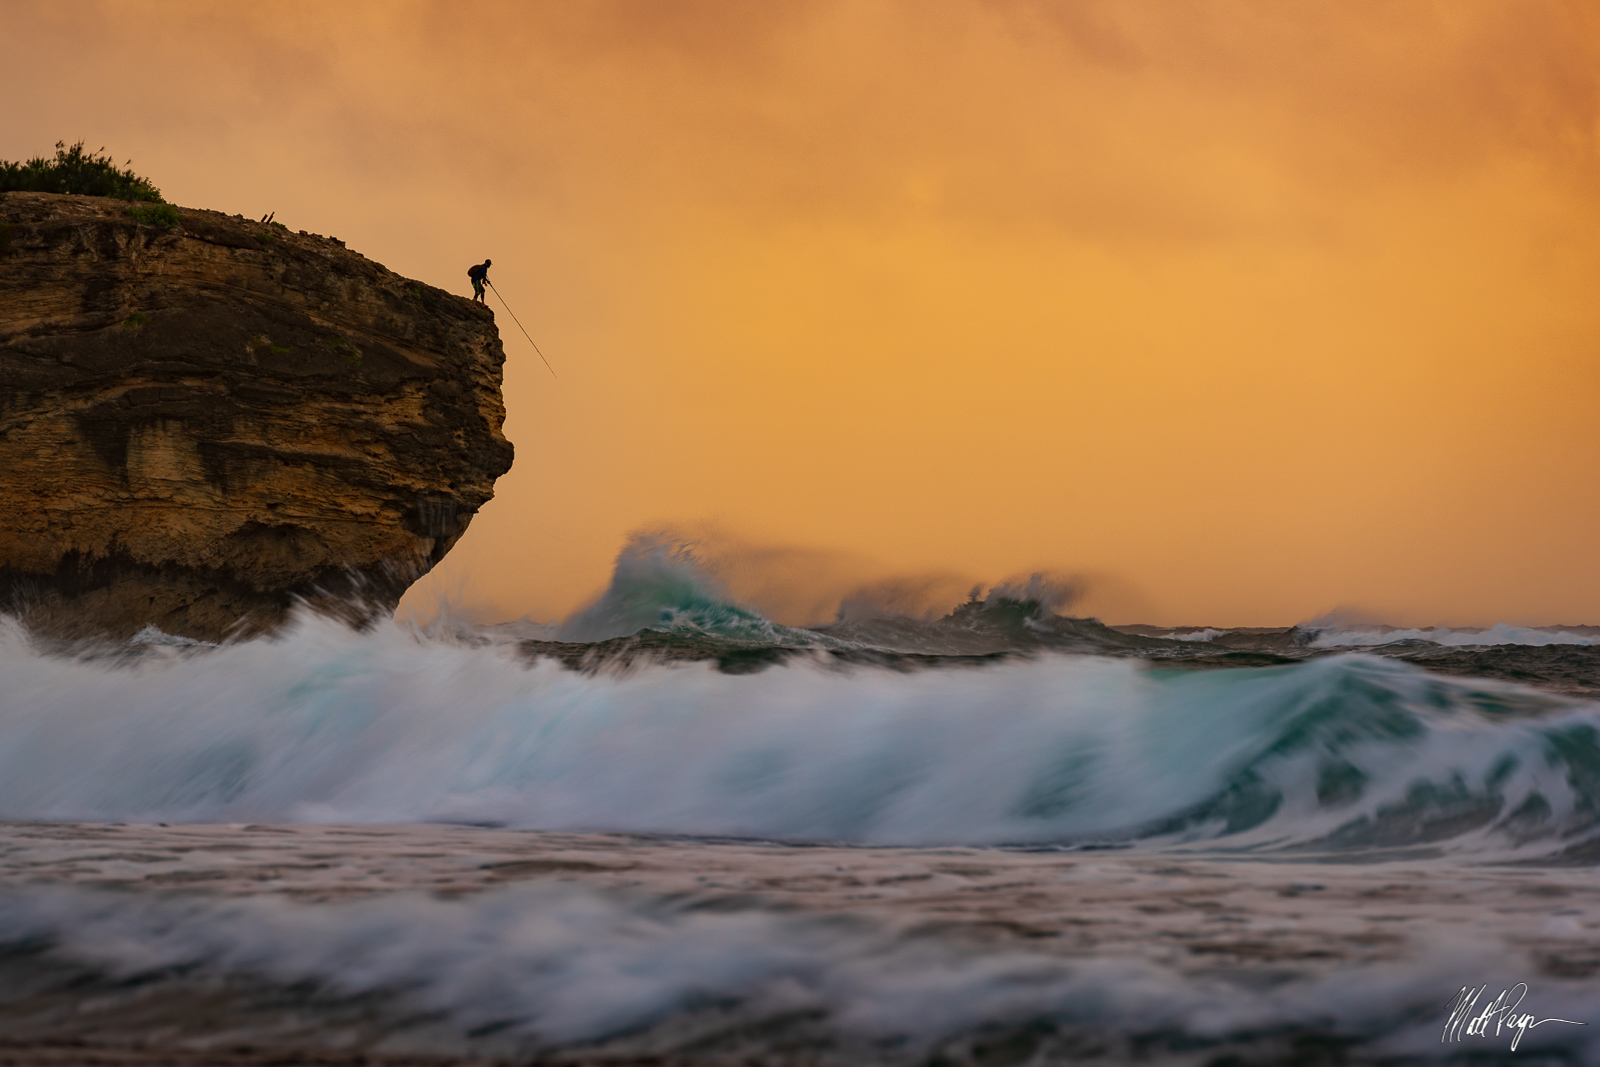 On an early December morning at Shipwreck Beach in Poipu, Kauai, I witnessed some great light at sunrise and this adventurous...